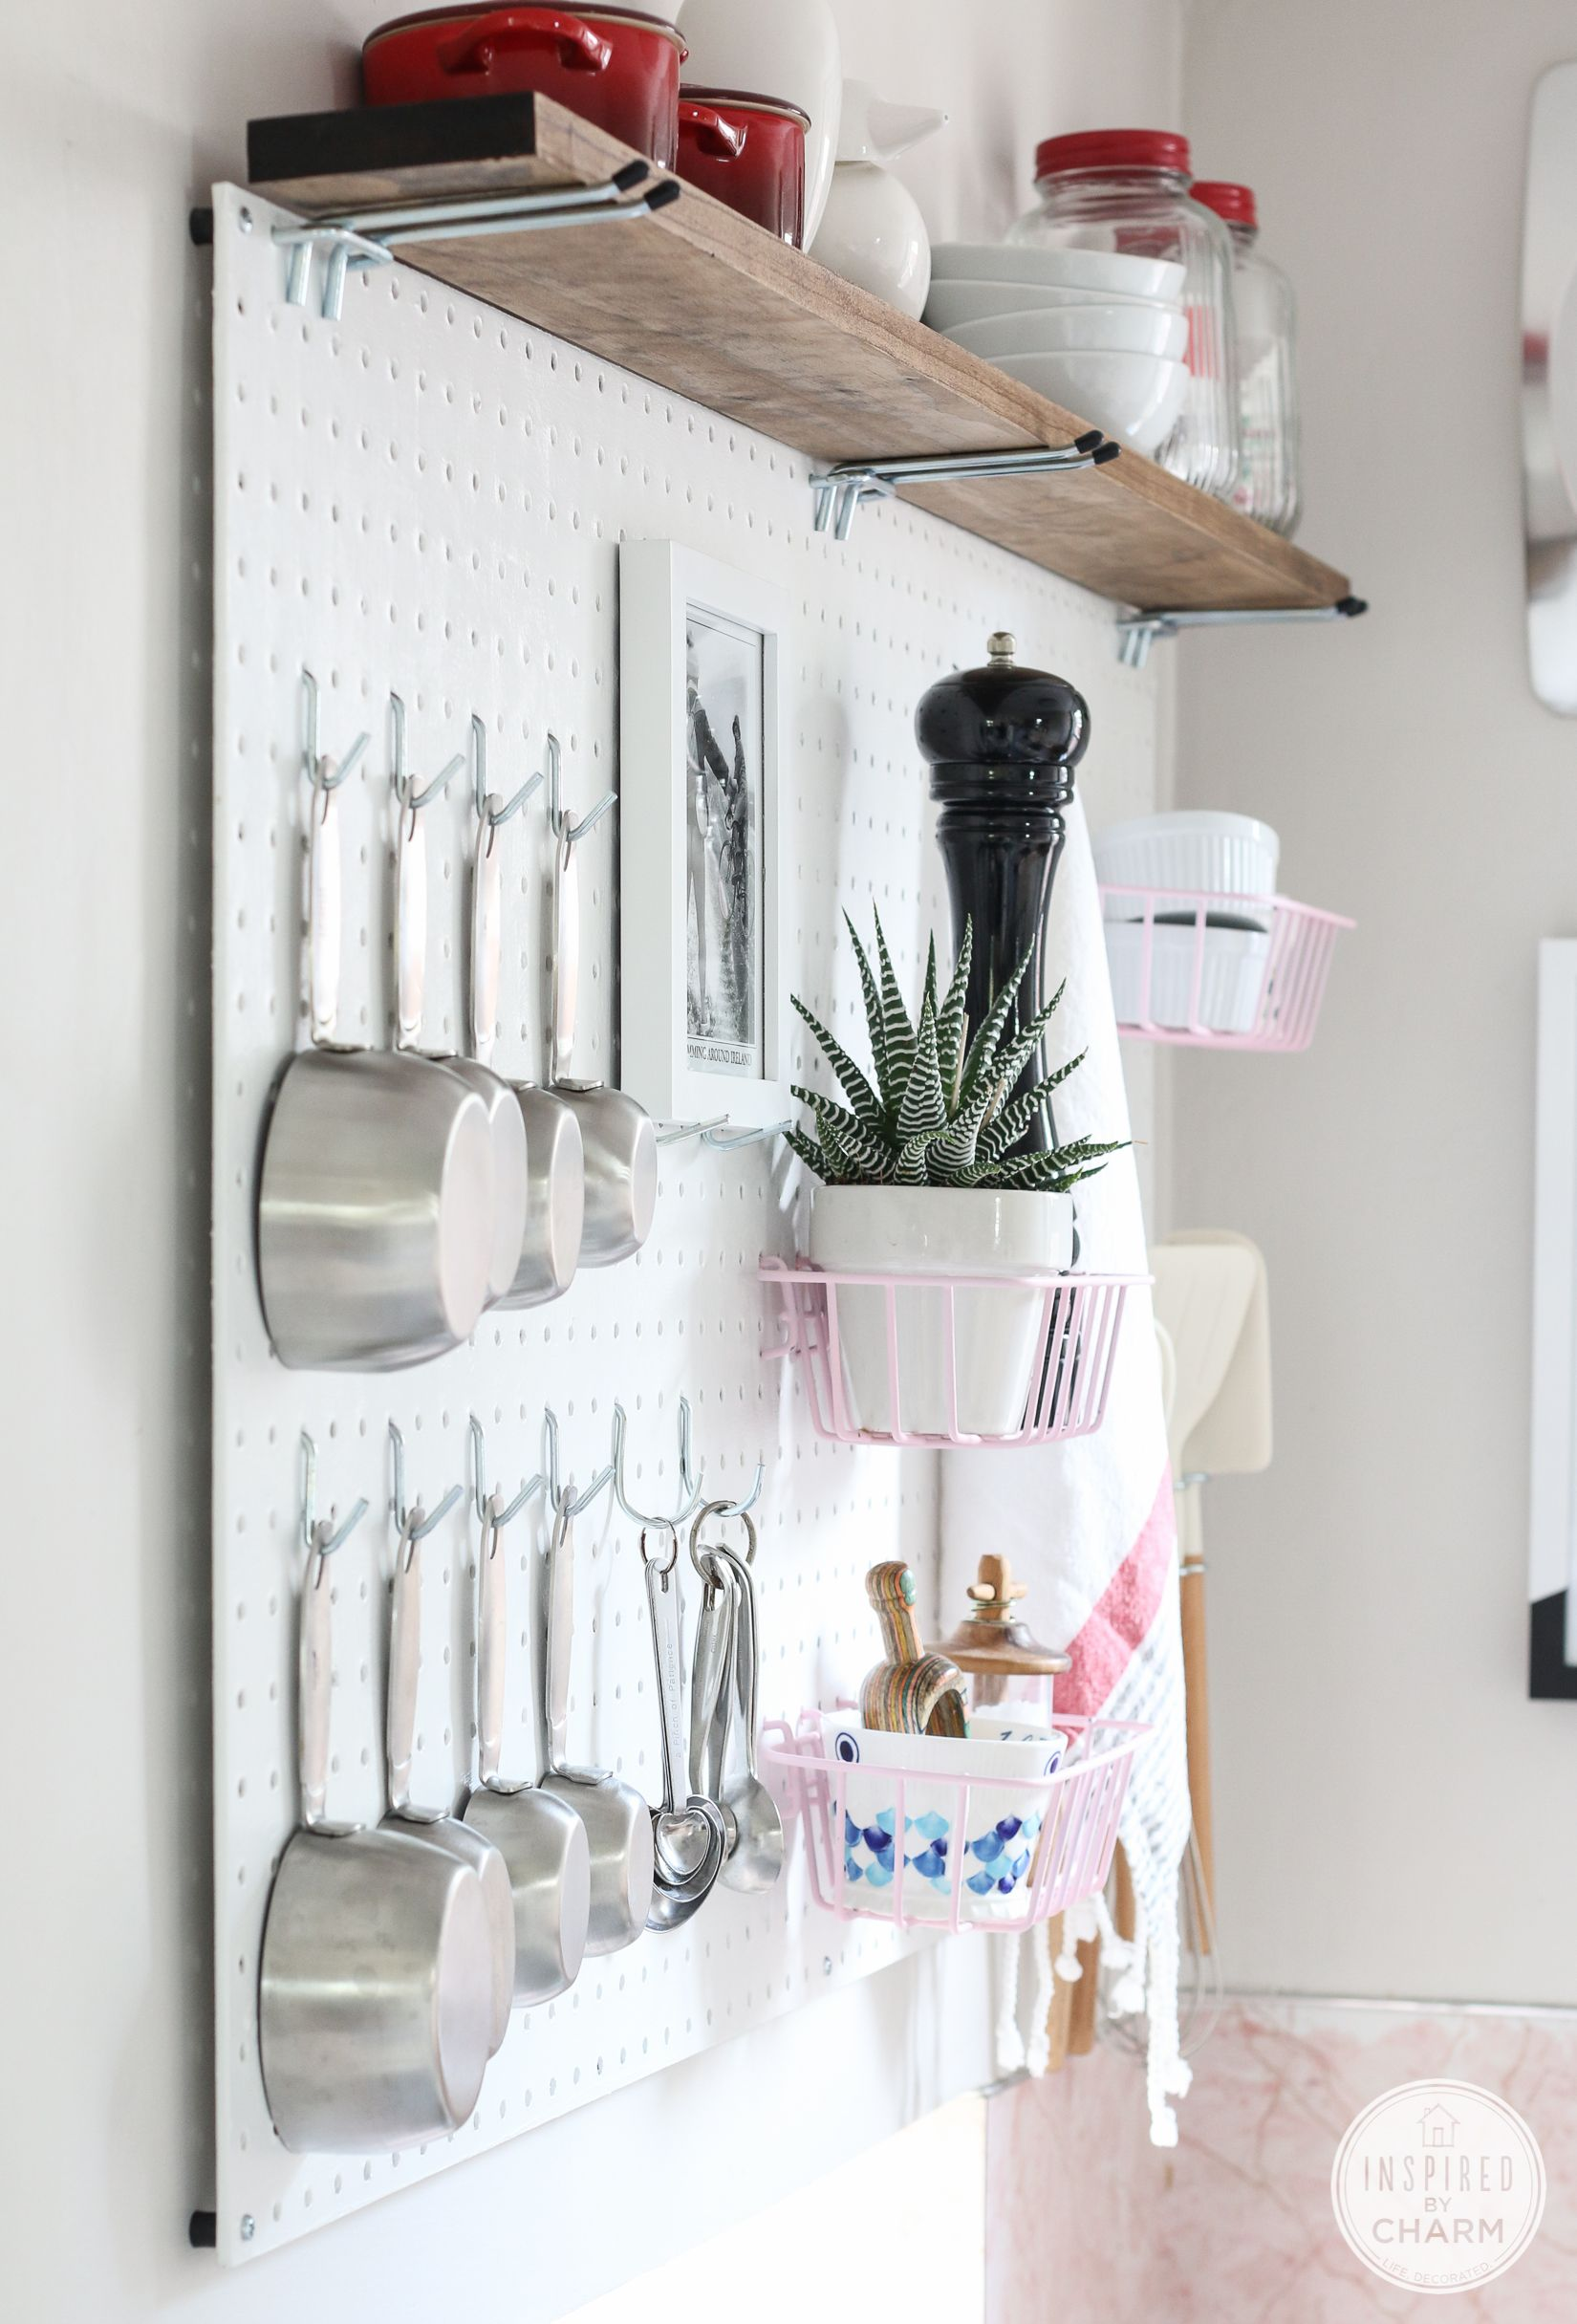 Kitchen Pegboard Ideas - Cookware and Recipes